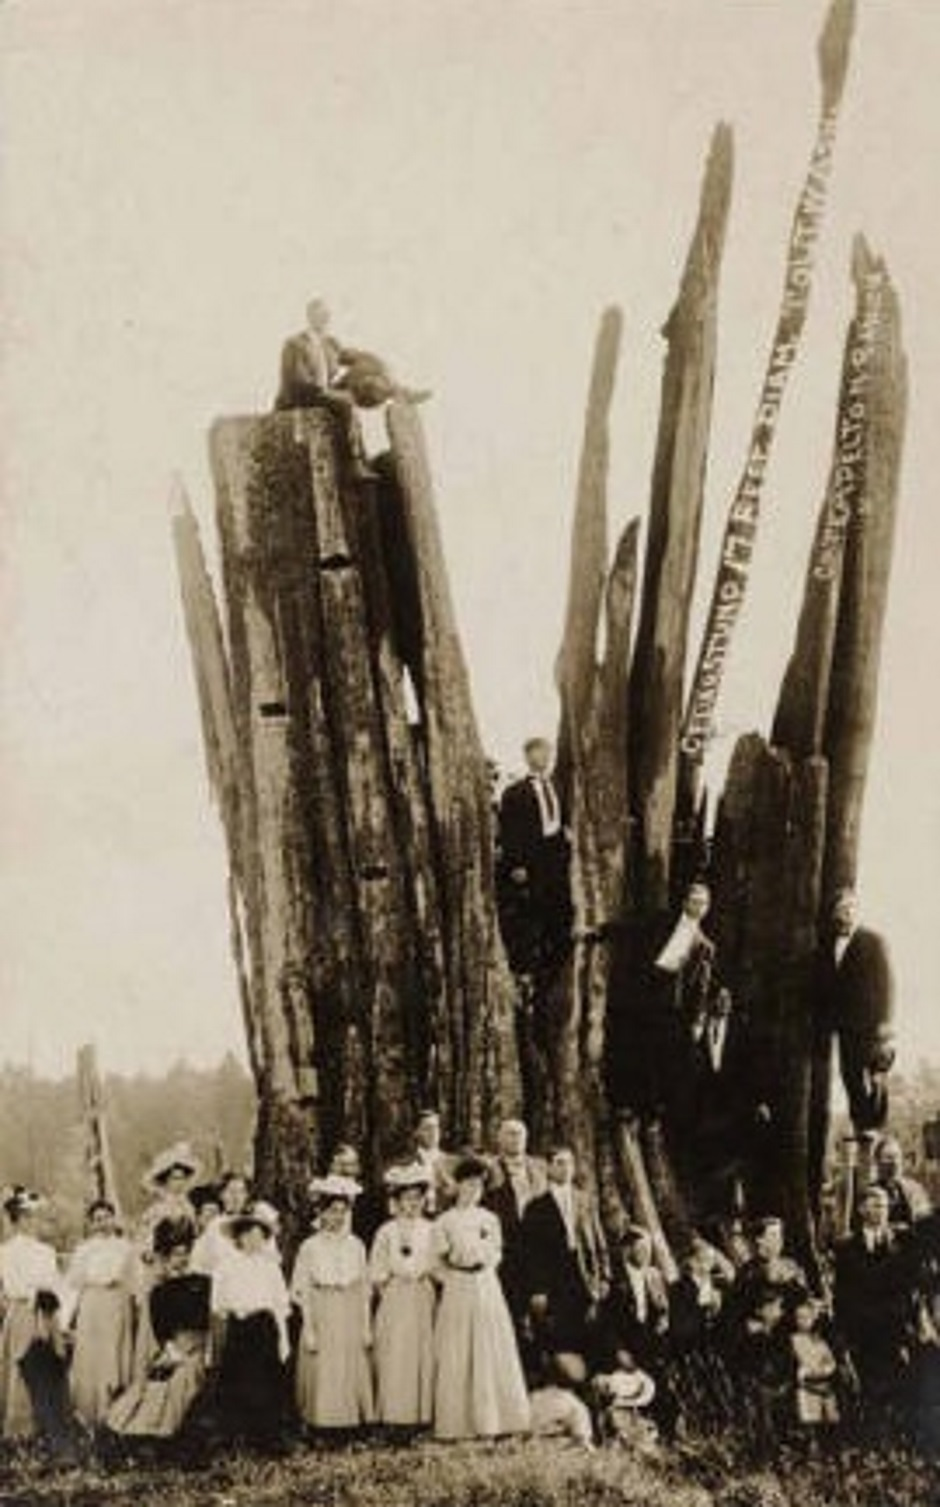 Carnation Huge Cedar Stump Tolt 1905